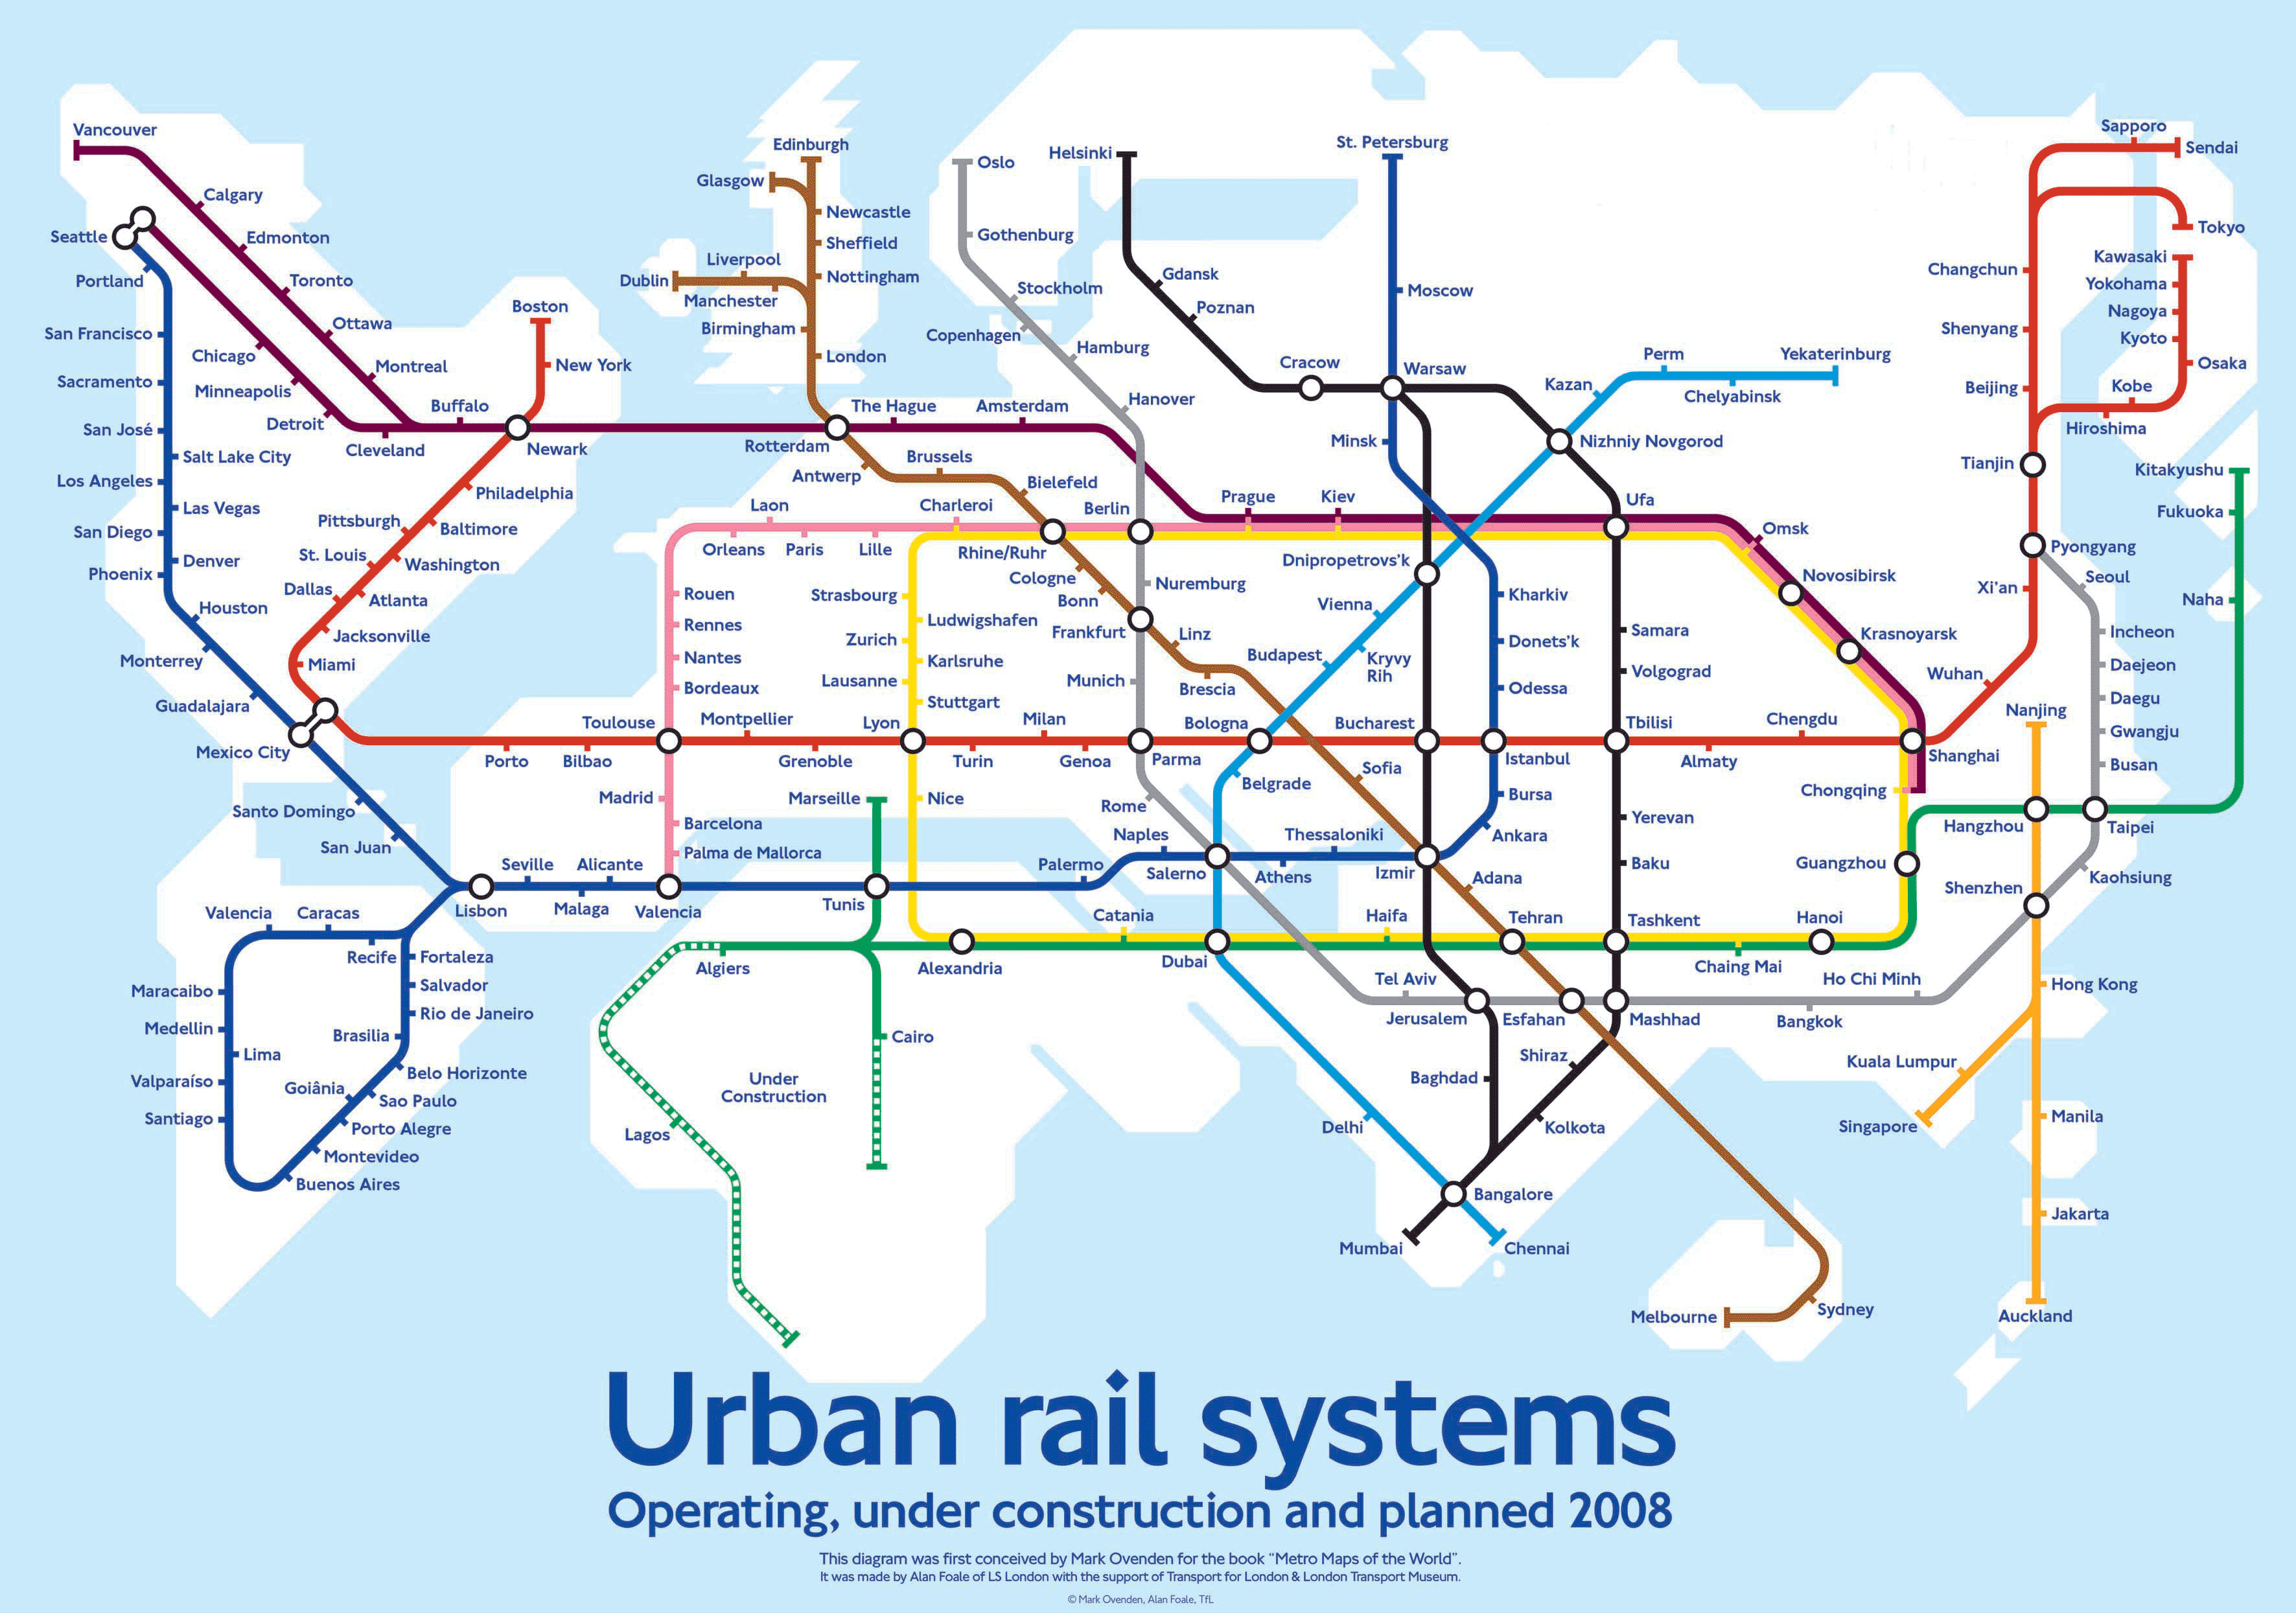 Athens Subway Map.World Map Shows What A Hyperloop Future May Look Like Inverse